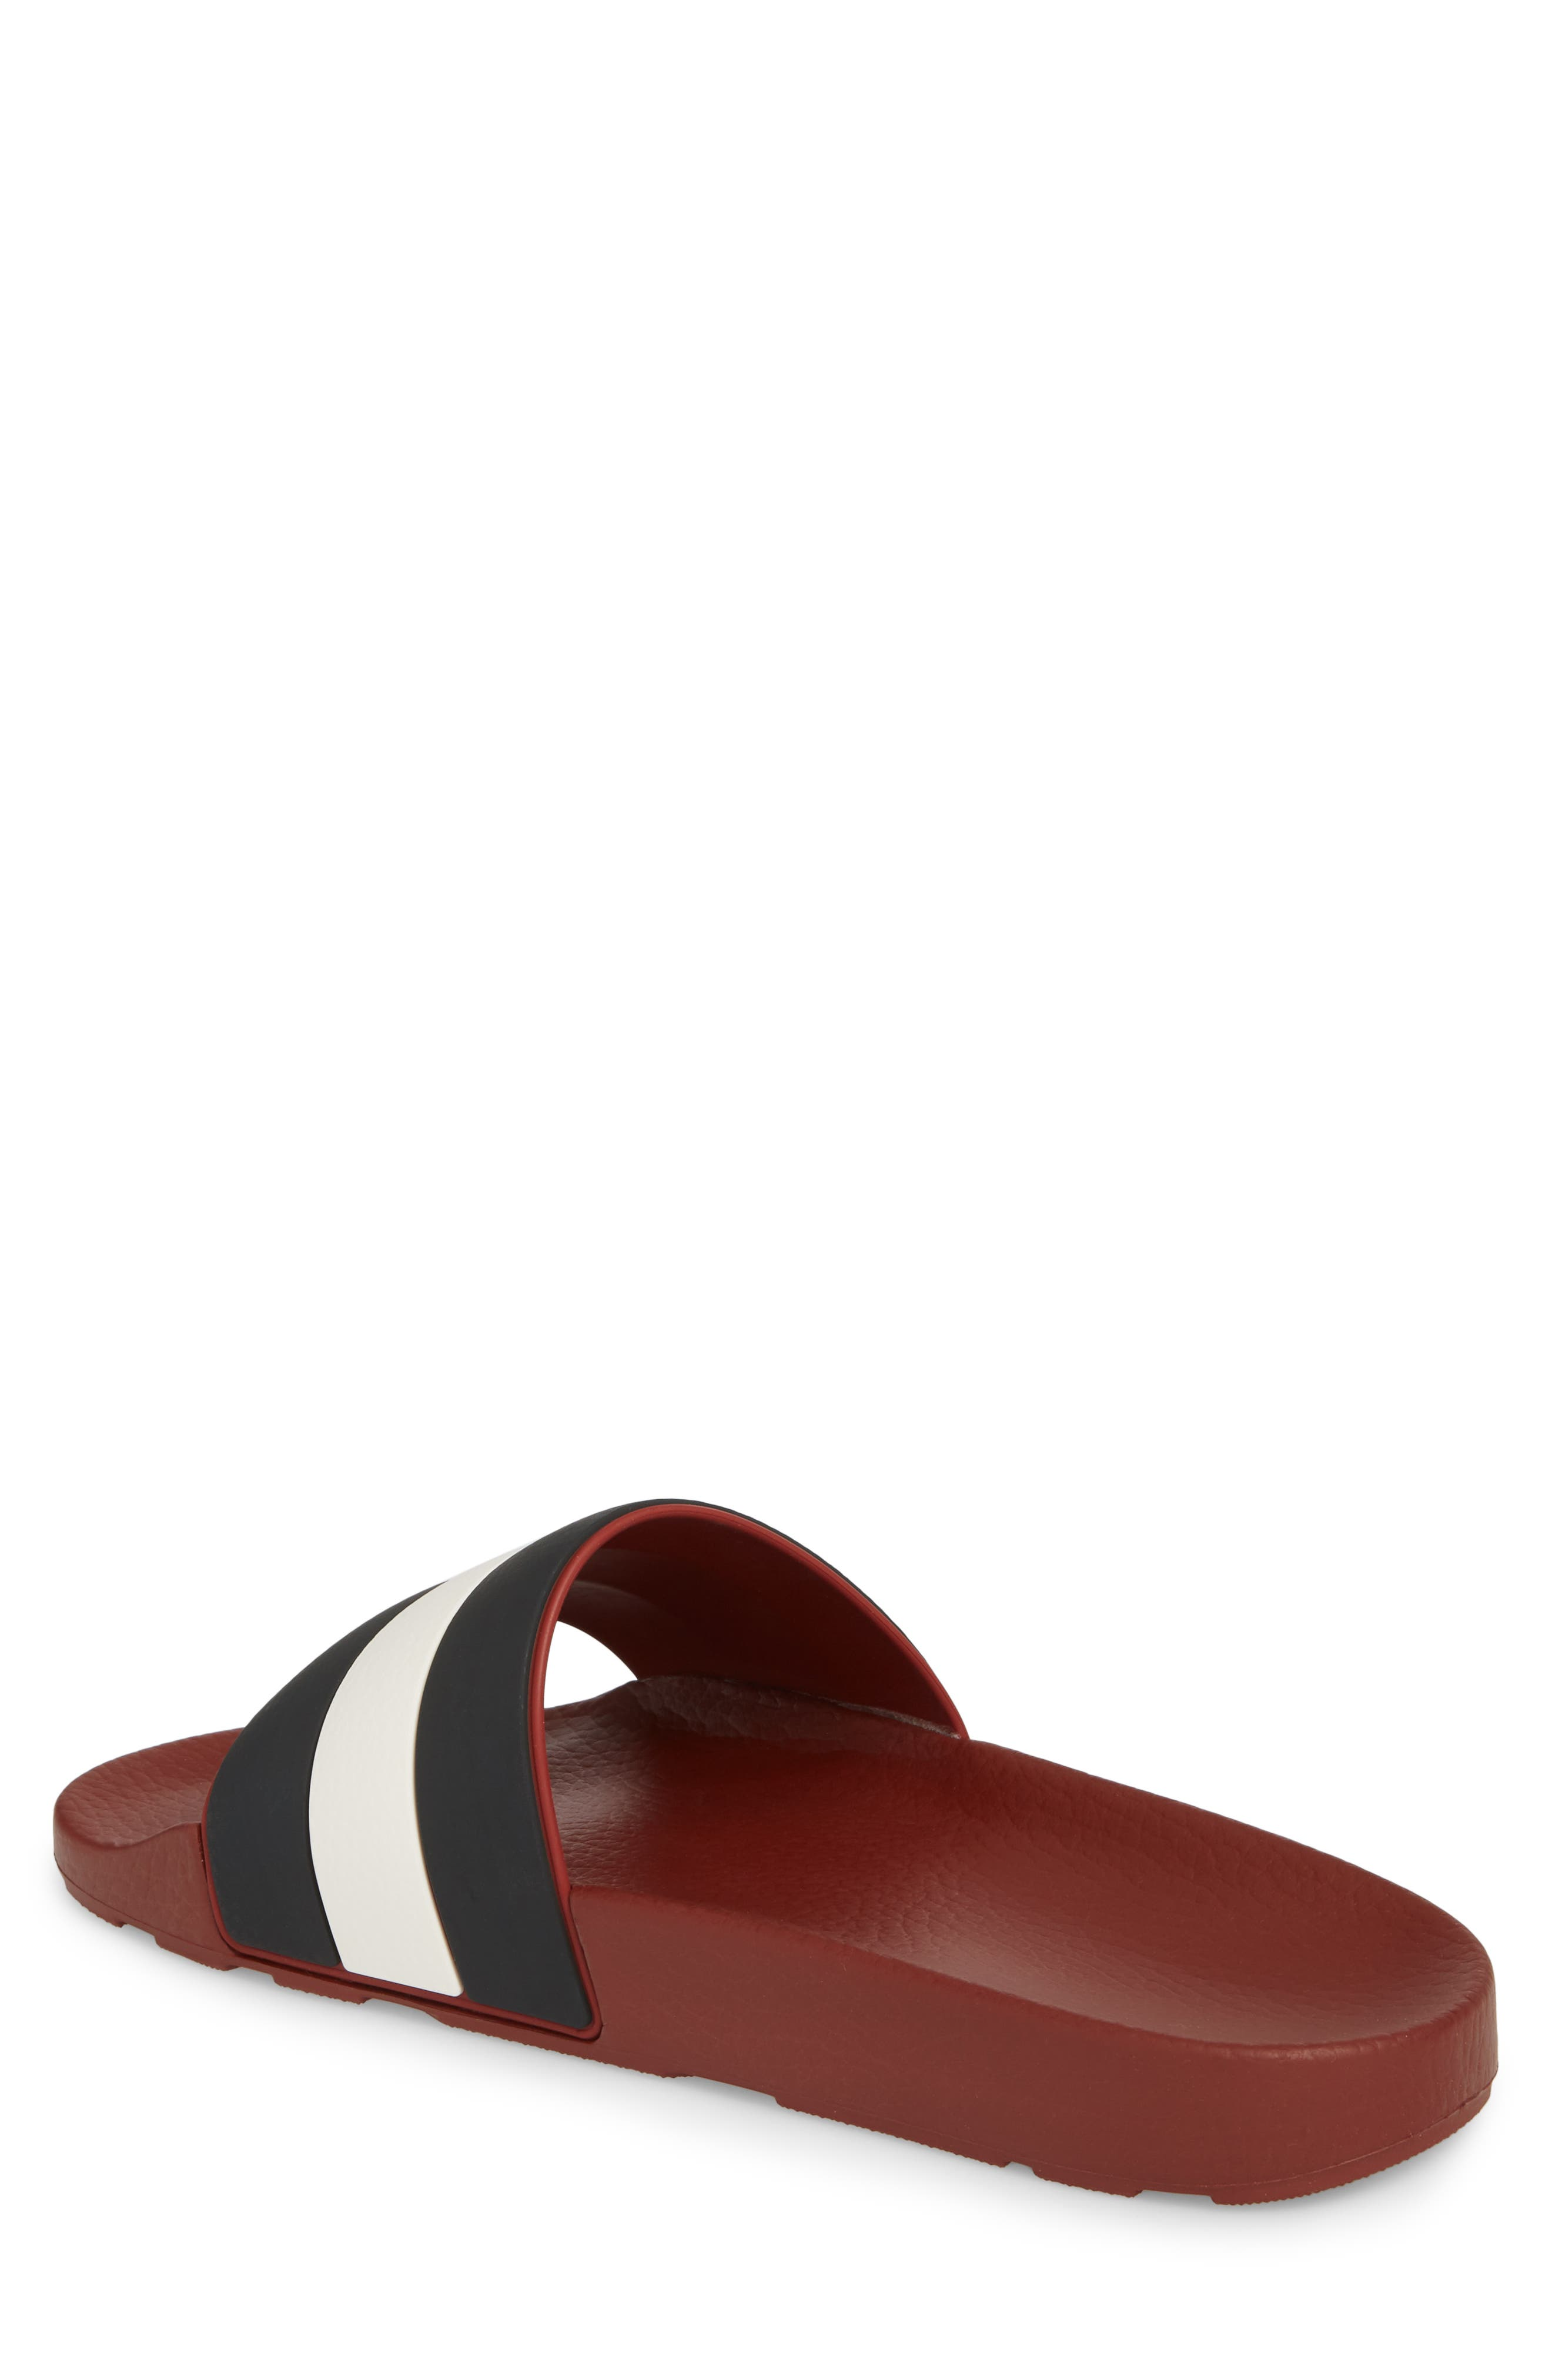 Sleter Sport Slide,                             Alternate thumbnail 2, color,                             Garnet